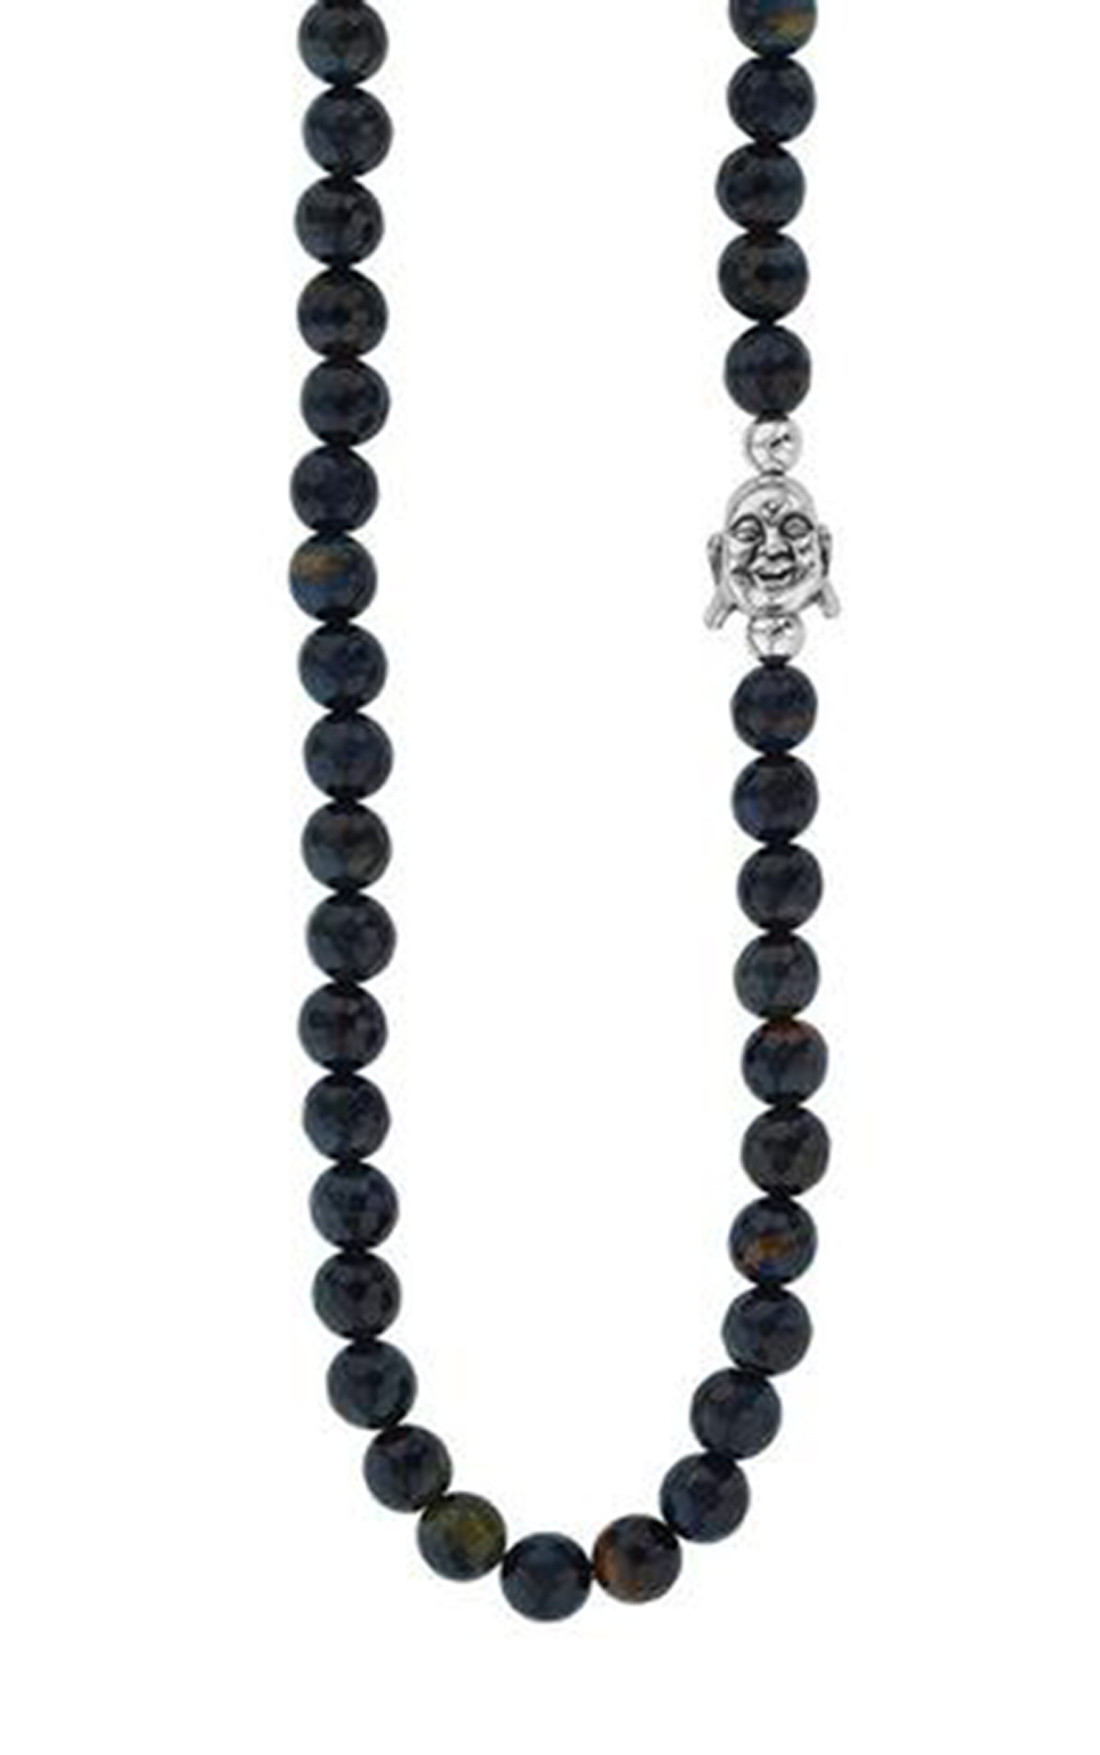 King Baby - Smiling Buddha and Faceted Blue Tiger Eye Bead Necklace (K51-5551)